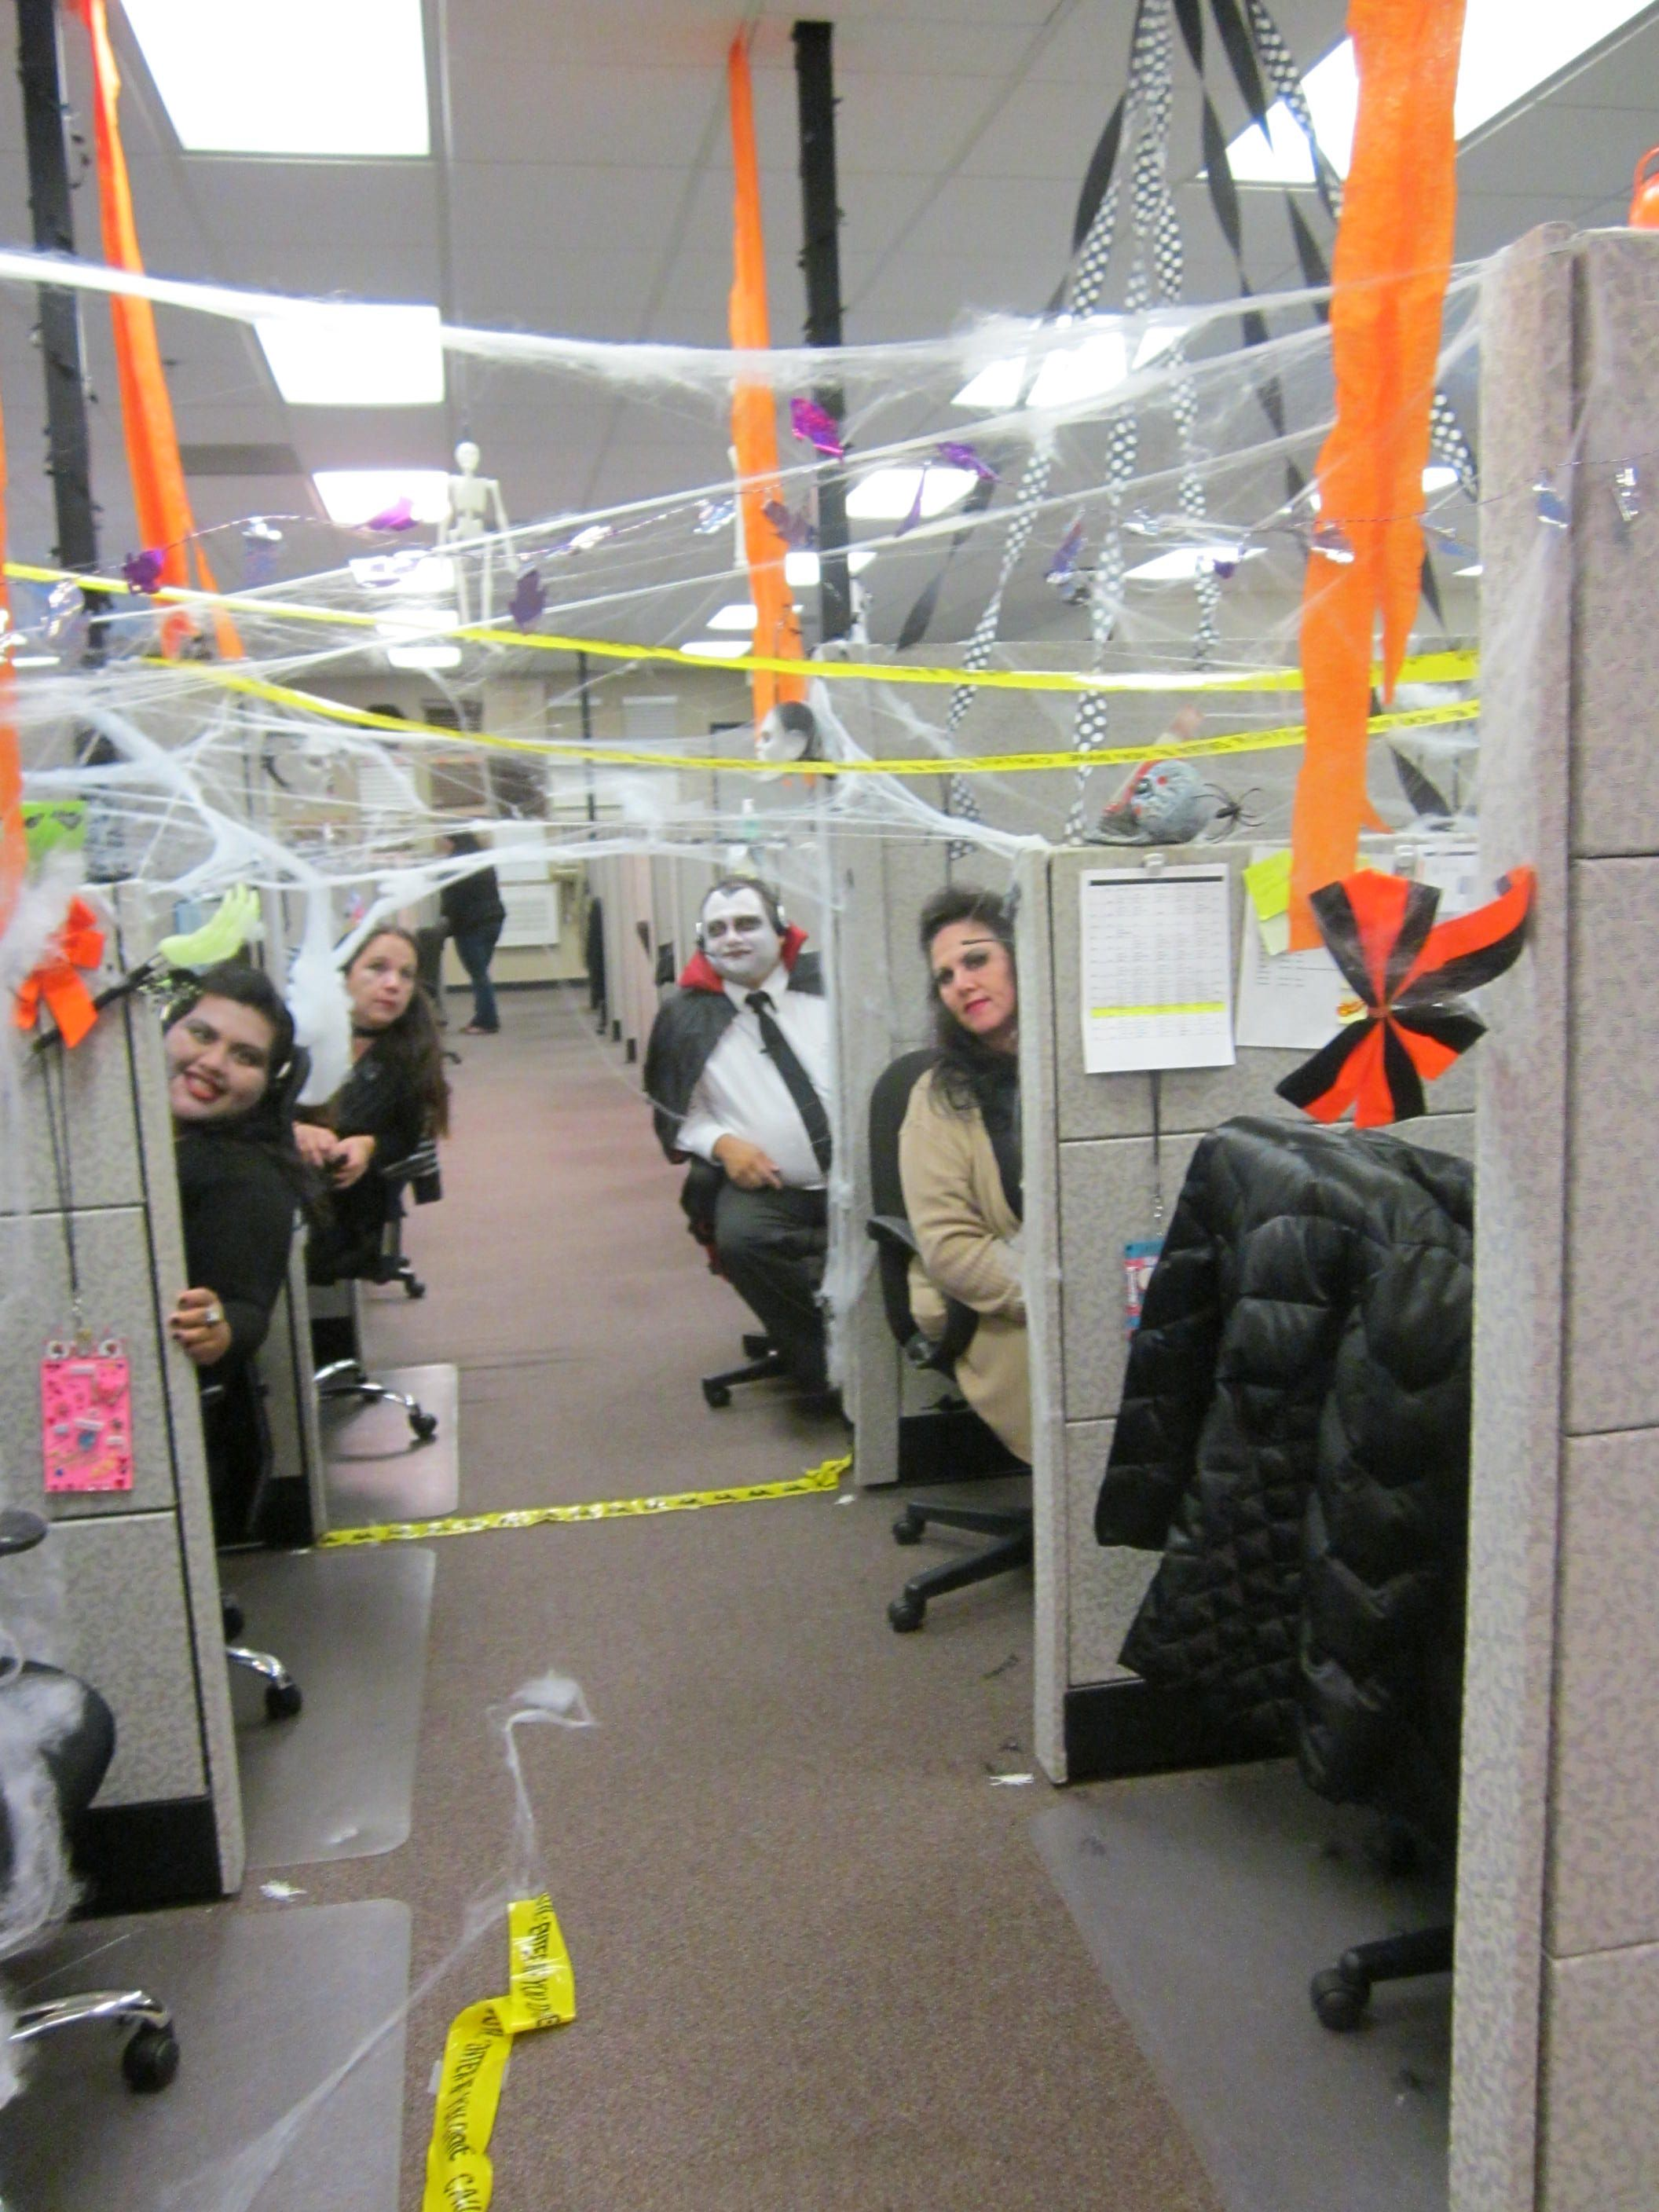 Decorating Office Cubicle -   wwwrebeccacobernet/7082 - halloween decorations for the office